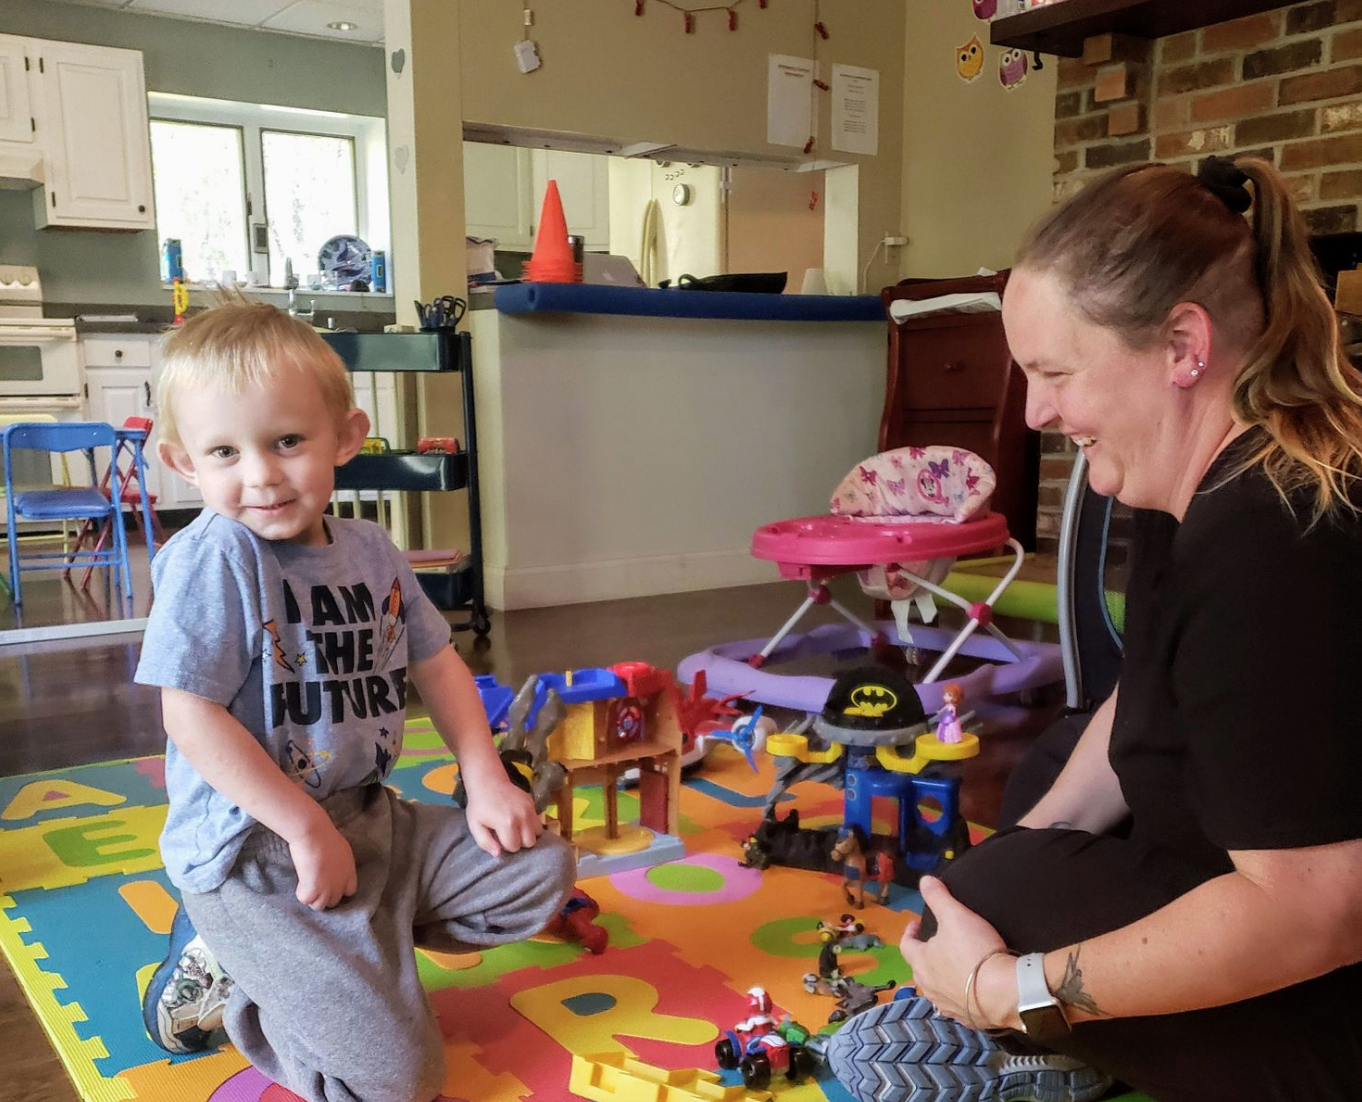 Children will learn through play at the new Learning Garden Daycare